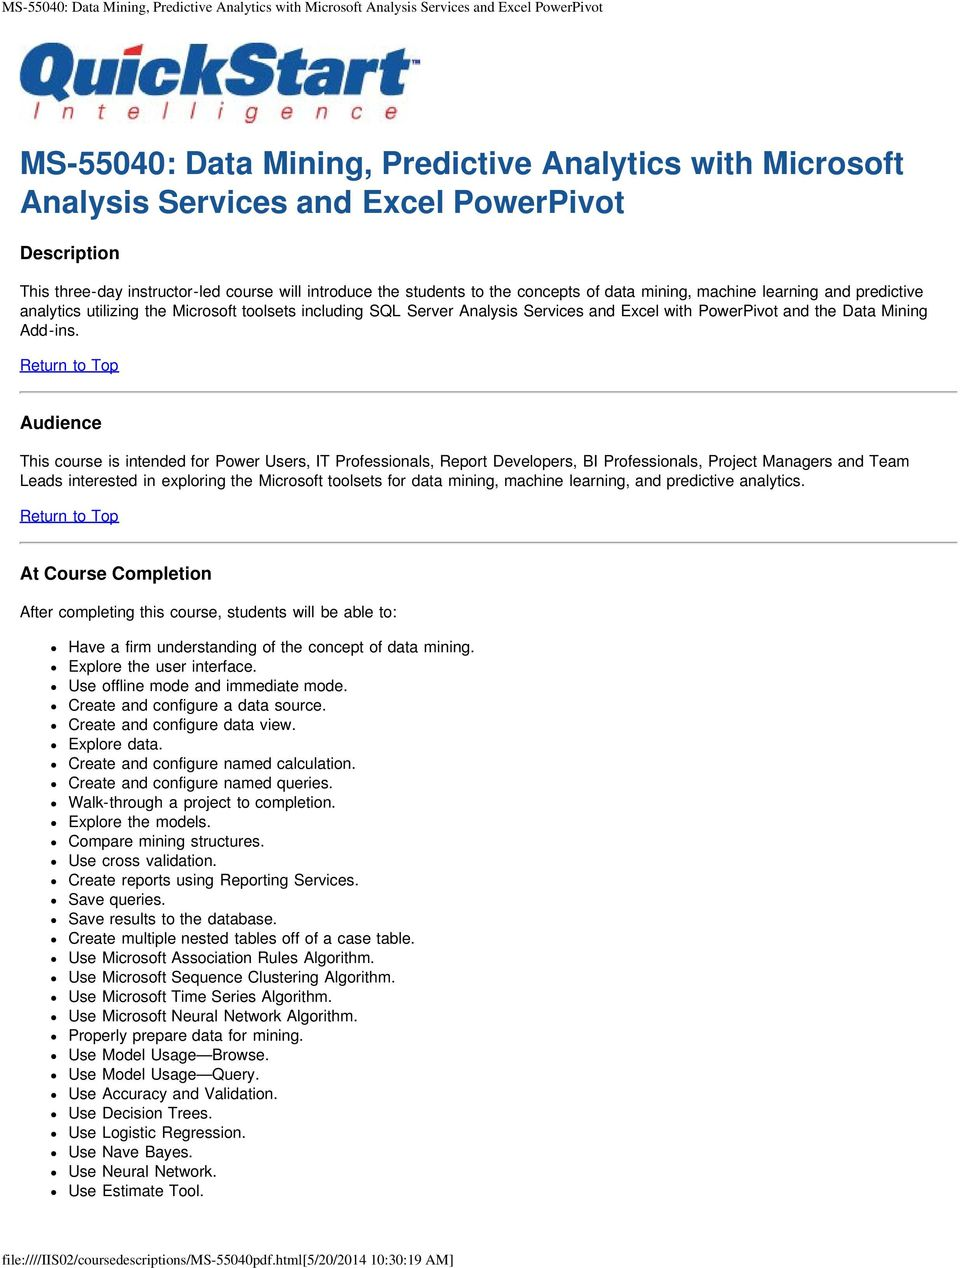 Audience This course is intended for Power Users, IT Professionals, Report Developers, BI Professionals, Project Managers and Team Leads interested in exploring the Microsoft toolsets for data